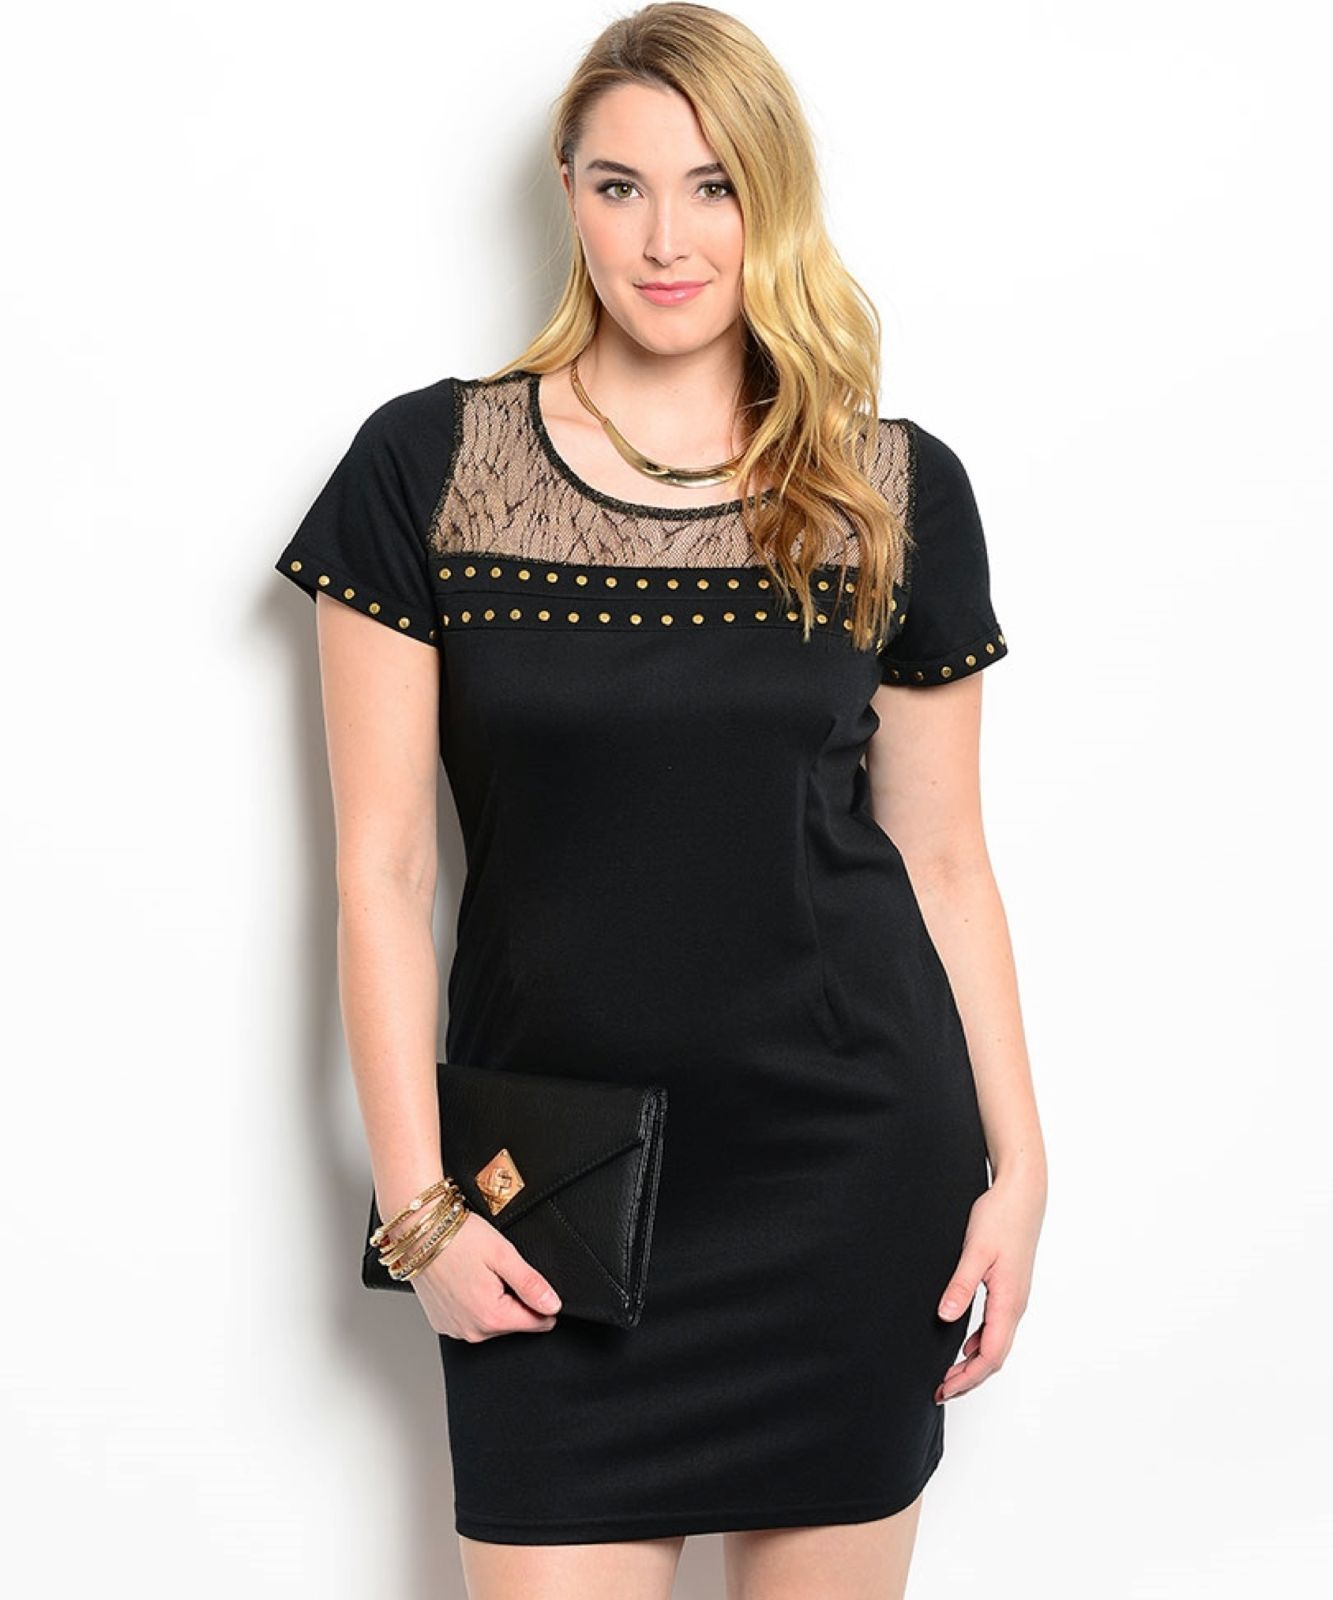 Image 0 of Sexy Studded Black and Gold Party Cruise Cocktail Plus Size Dress XL 2XL or 3XL